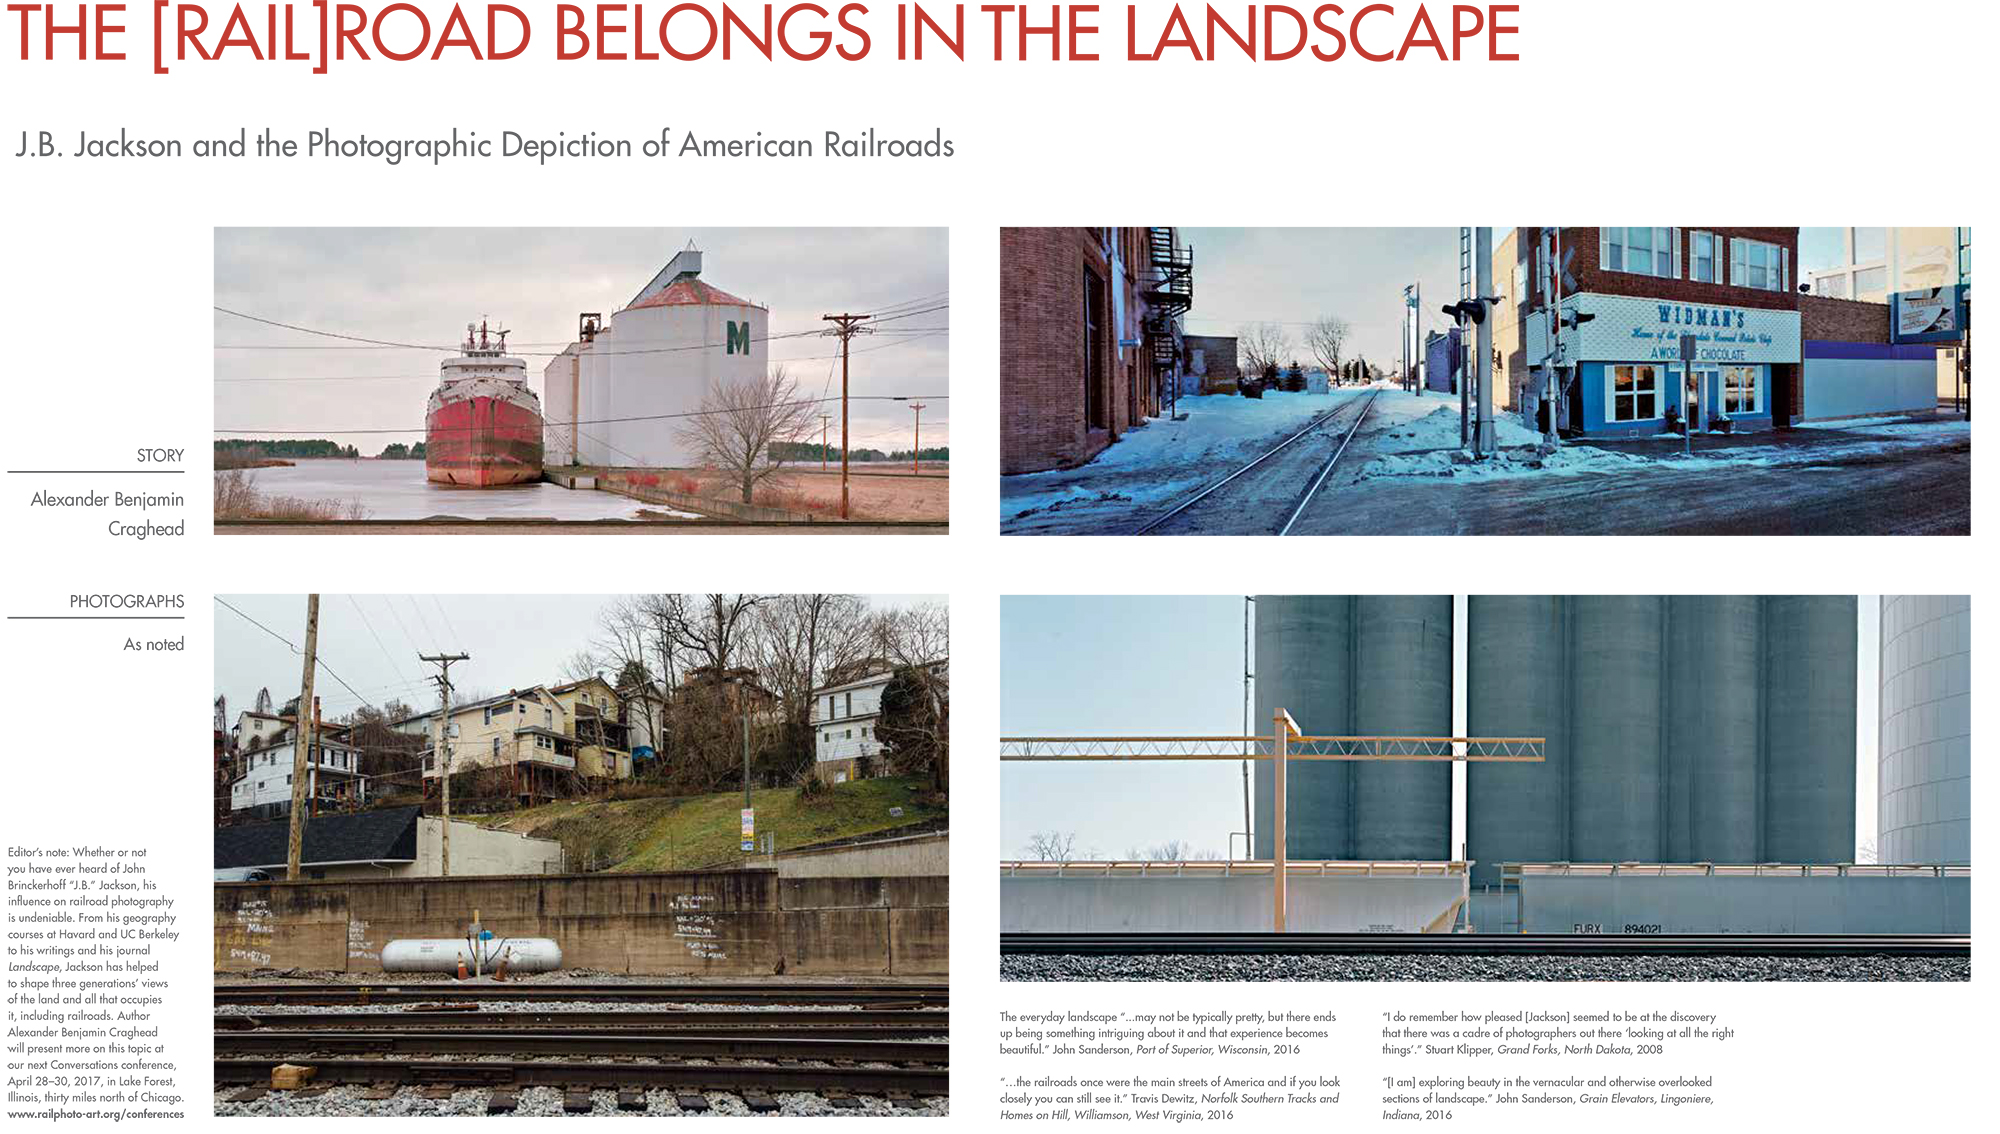 Some new work for the Mainline Project was recently included in Alexander Benjamin Craghead's article for Railroad Heritage, the quarterly journal of the Center for Railroad Photography & Art. Image credits, clockwise from the top left; John Sanderson, Stuart Klipper, John Sanderson and Travis Dewitz.  Reproduction courtesy of the Center for Railroad Photography & Art.